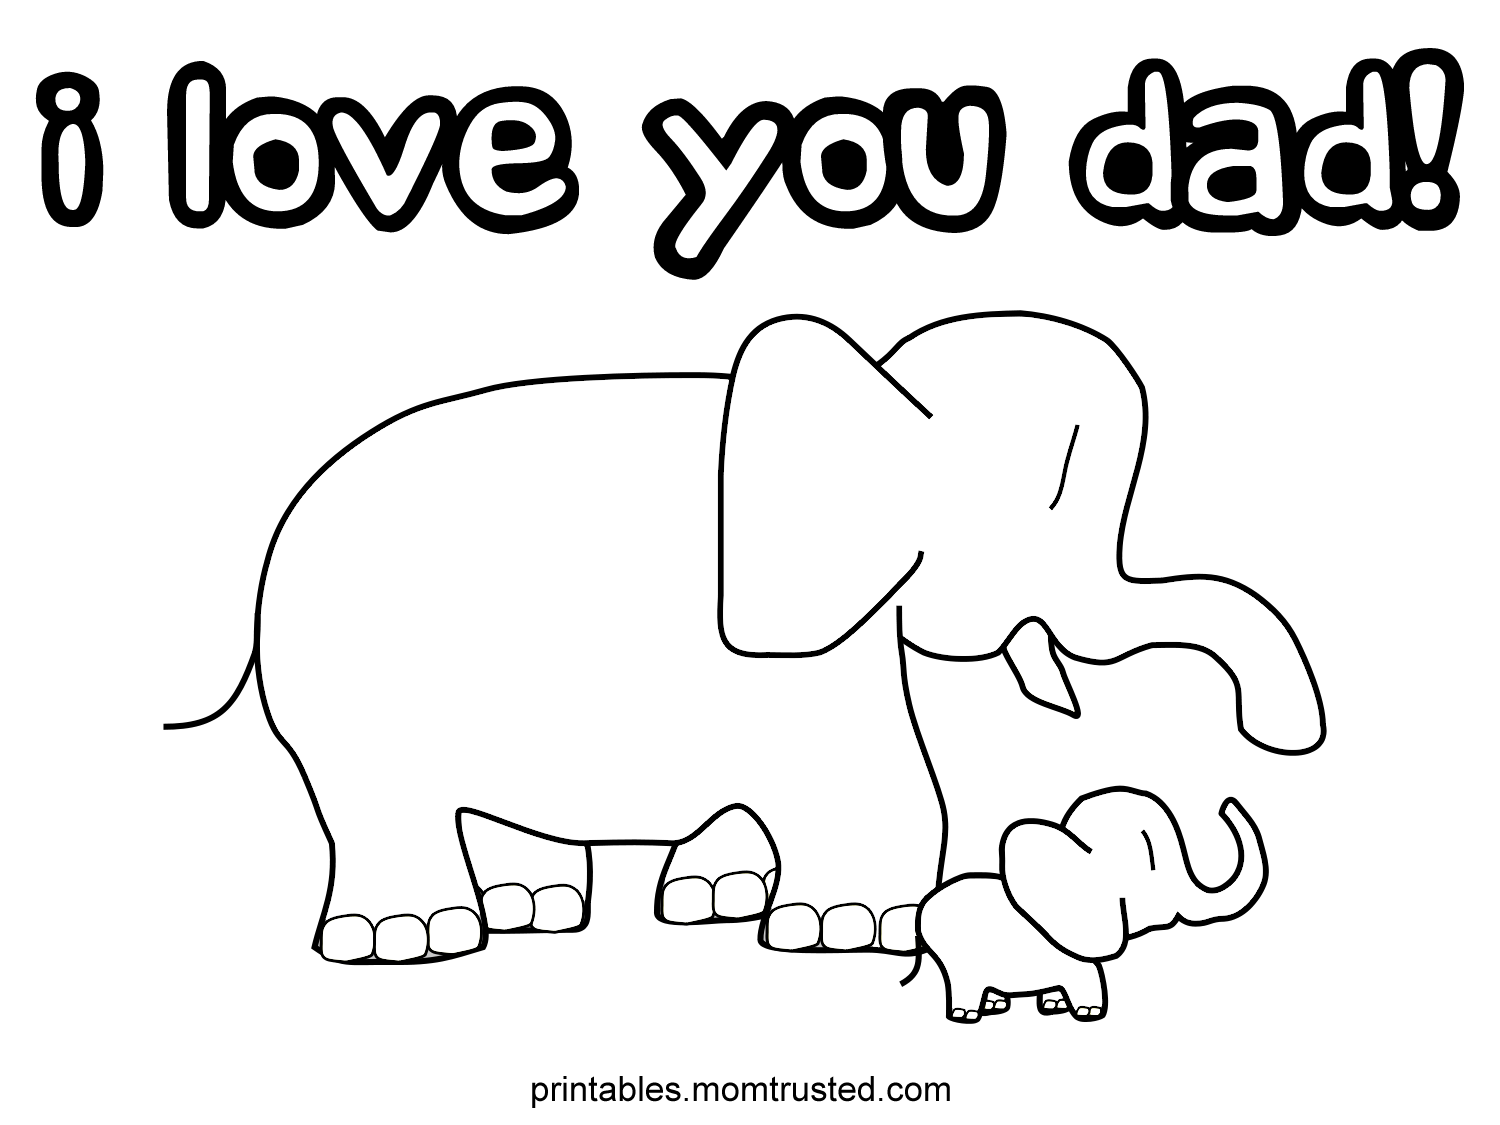 i love you dad elephants coloring page preschool activities and